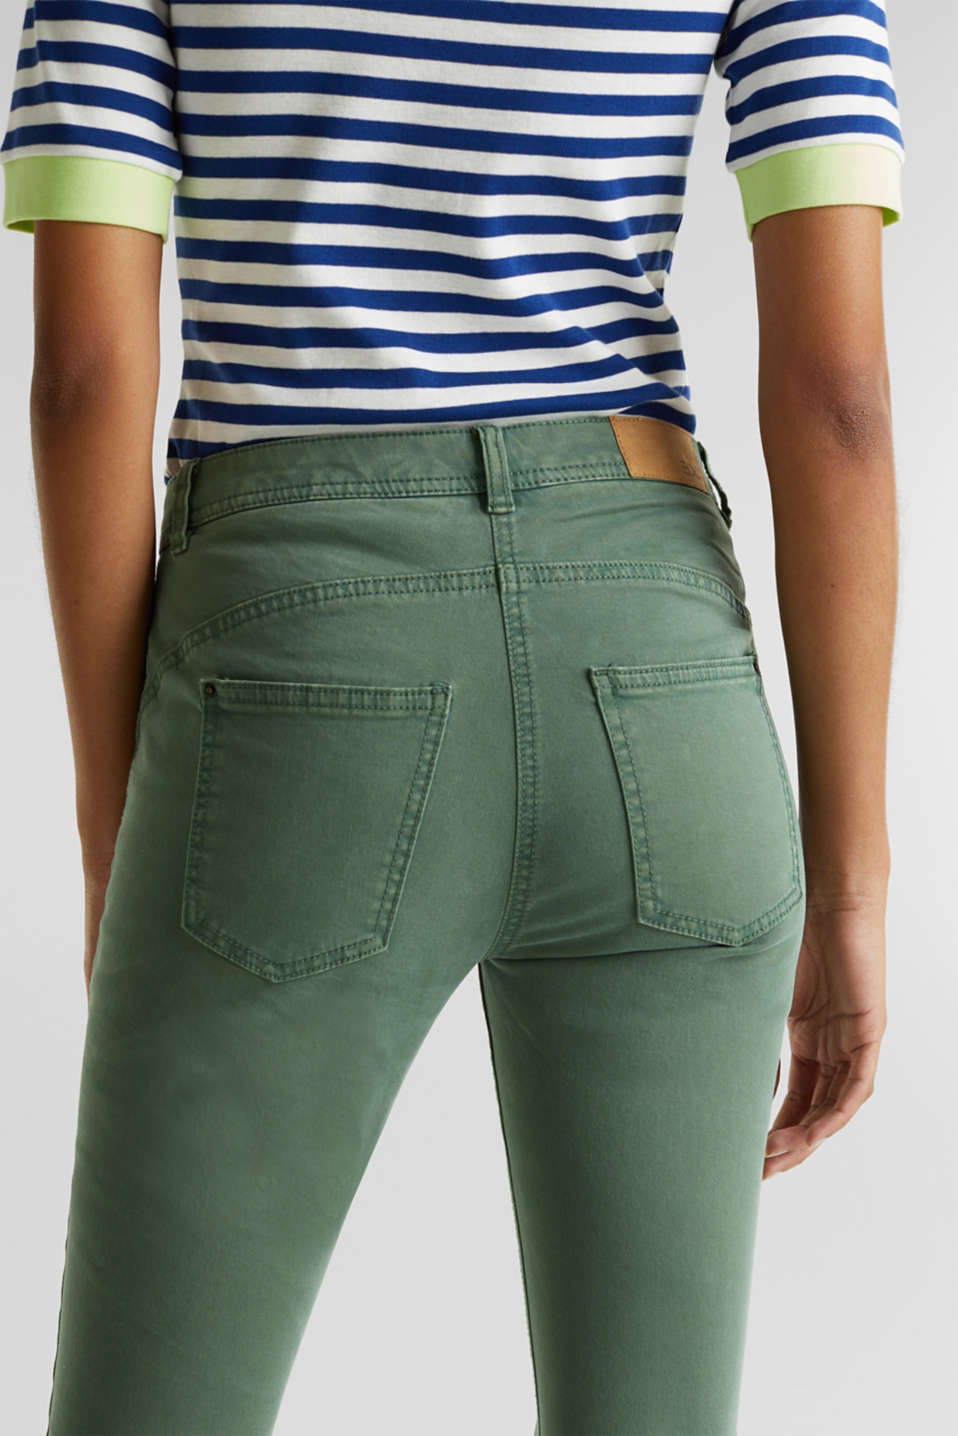 Ankle-length trousers in a garment-washed finish with organic cotton, KHAKI GREEN, detail image number 5